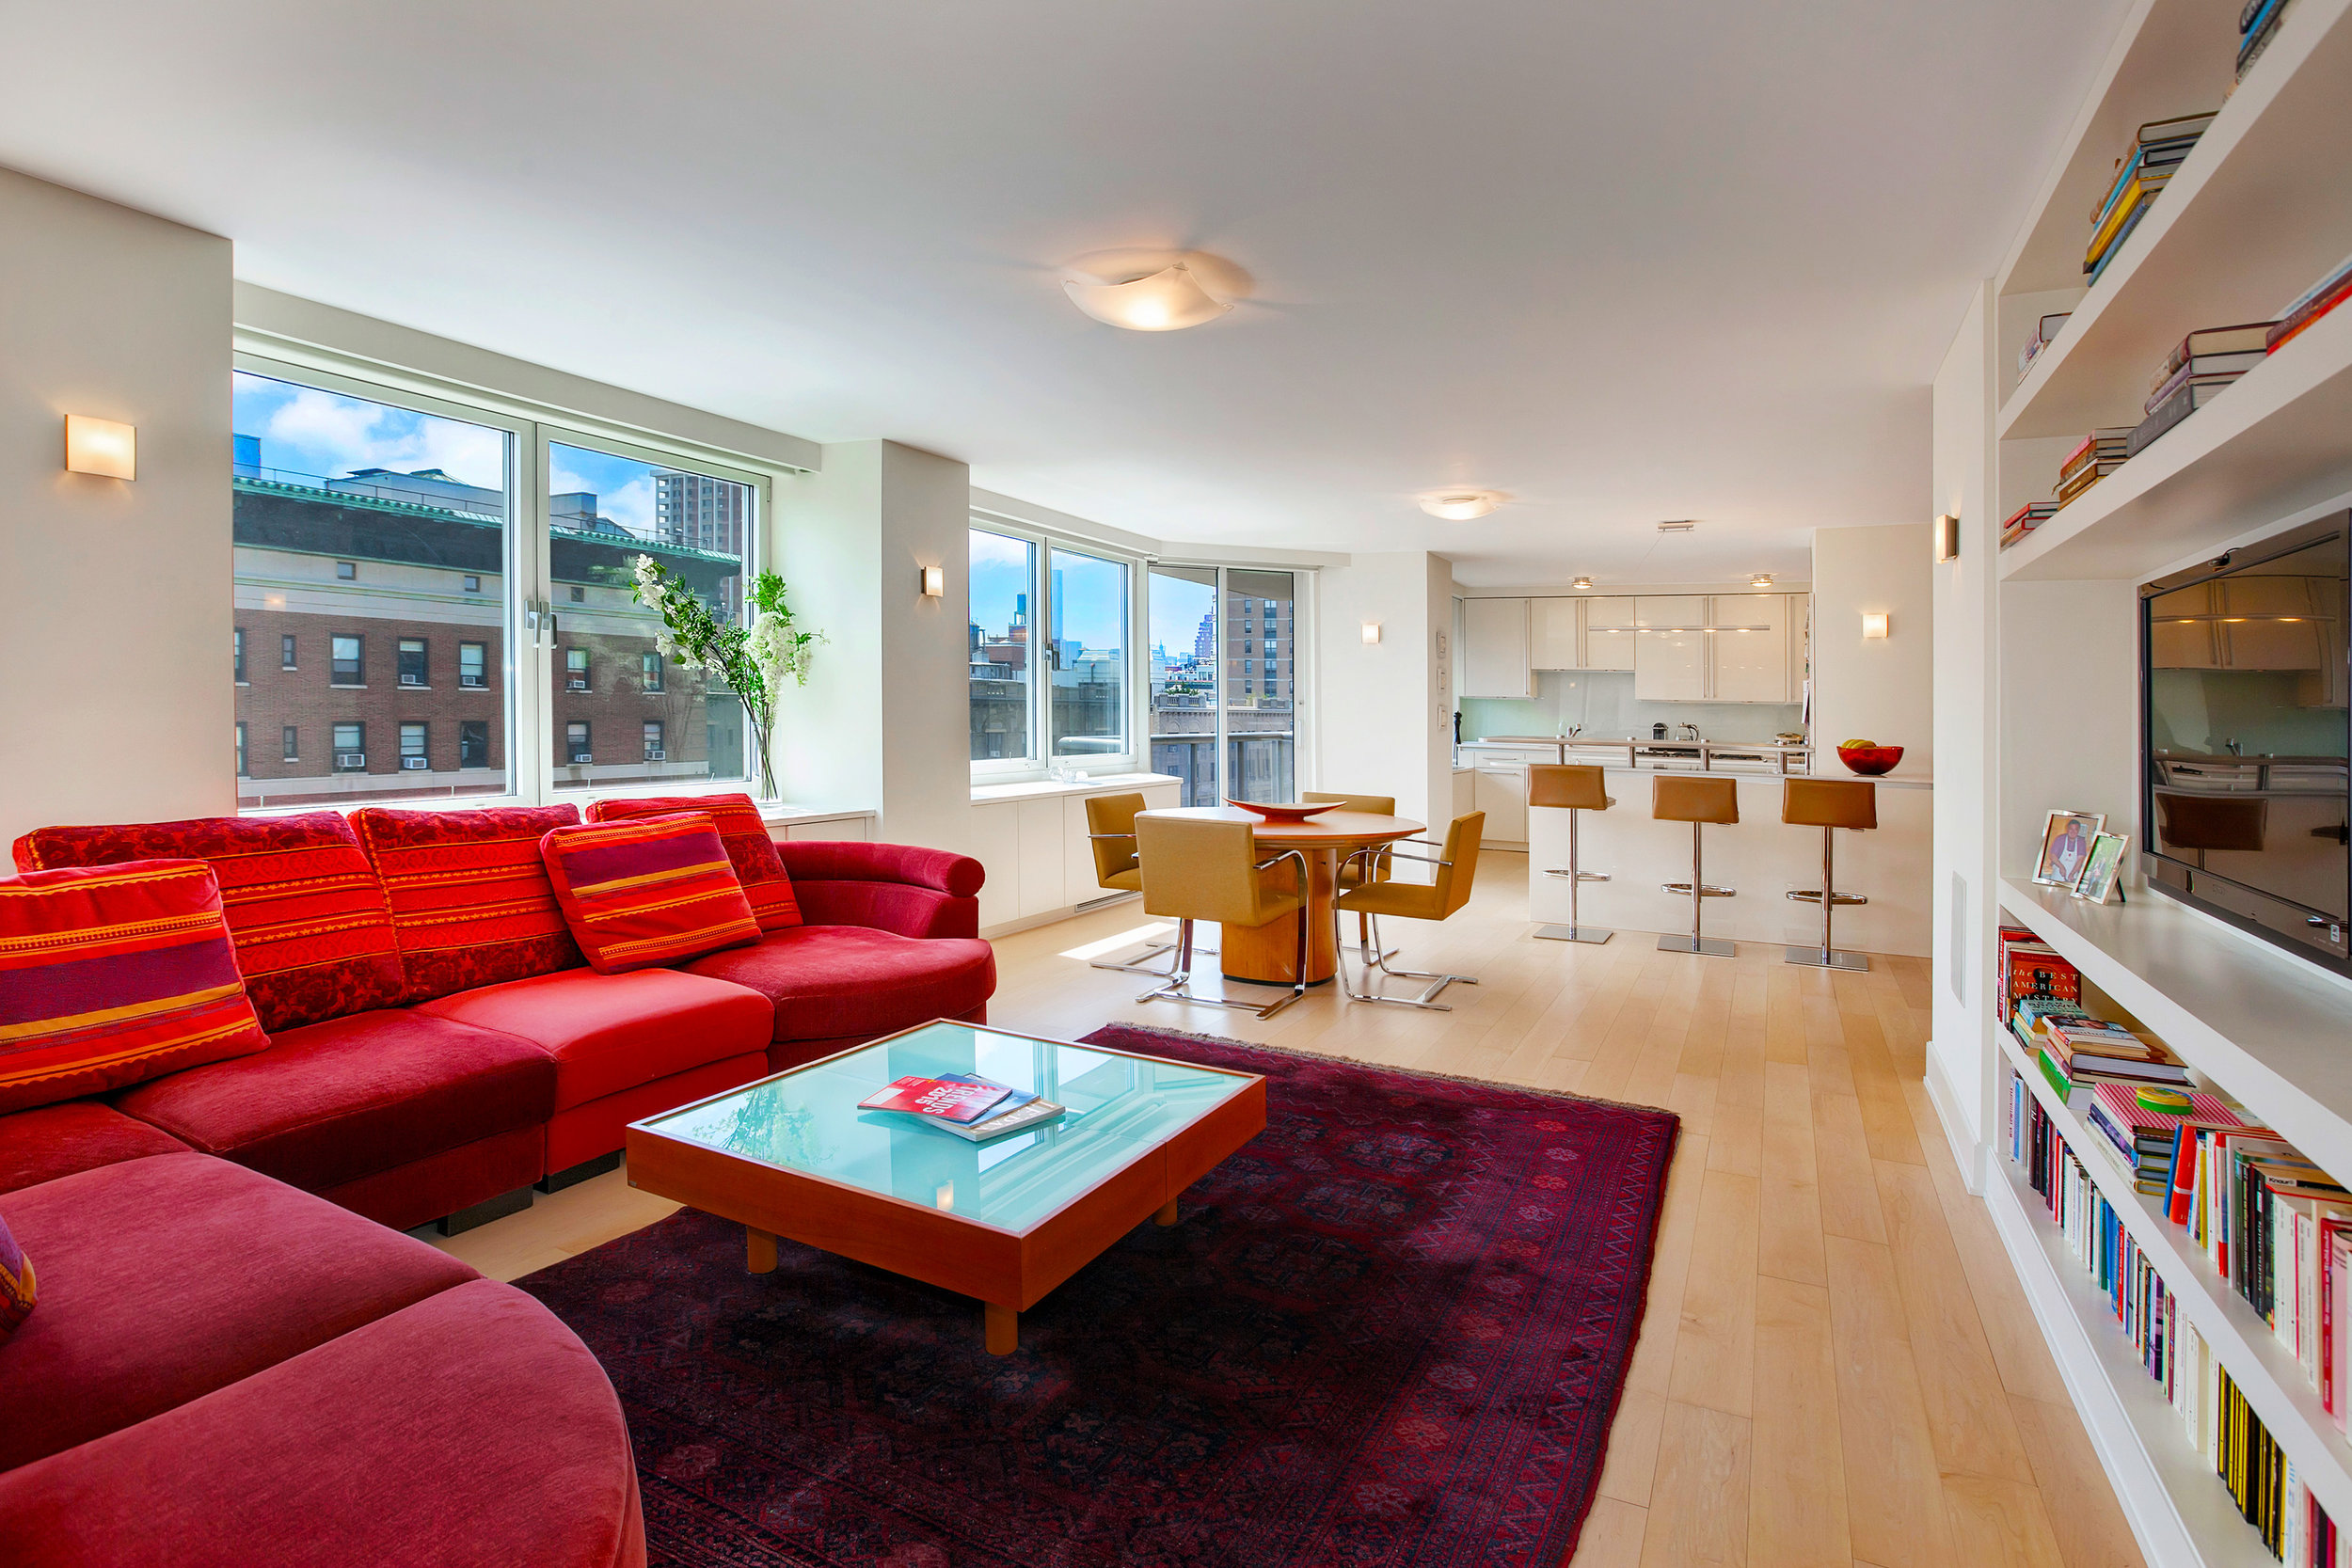 250West90thStreet17K_Dylan_Hildreth-Hoffman_DouglasElliman_Photography_28828987_high_res.jpg